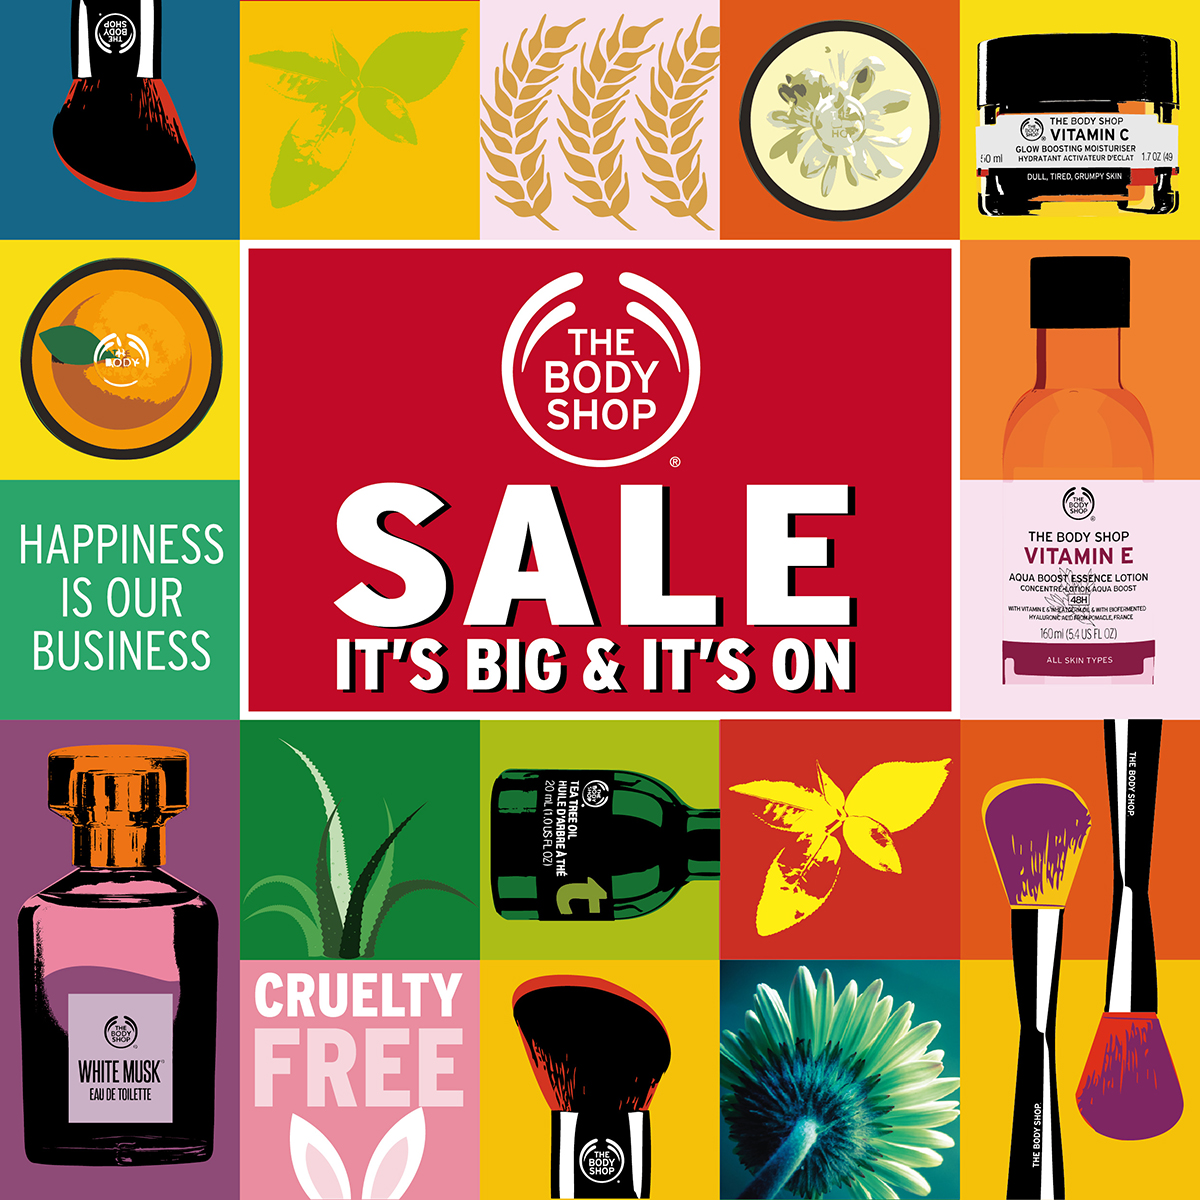 The Body Shop October Sale